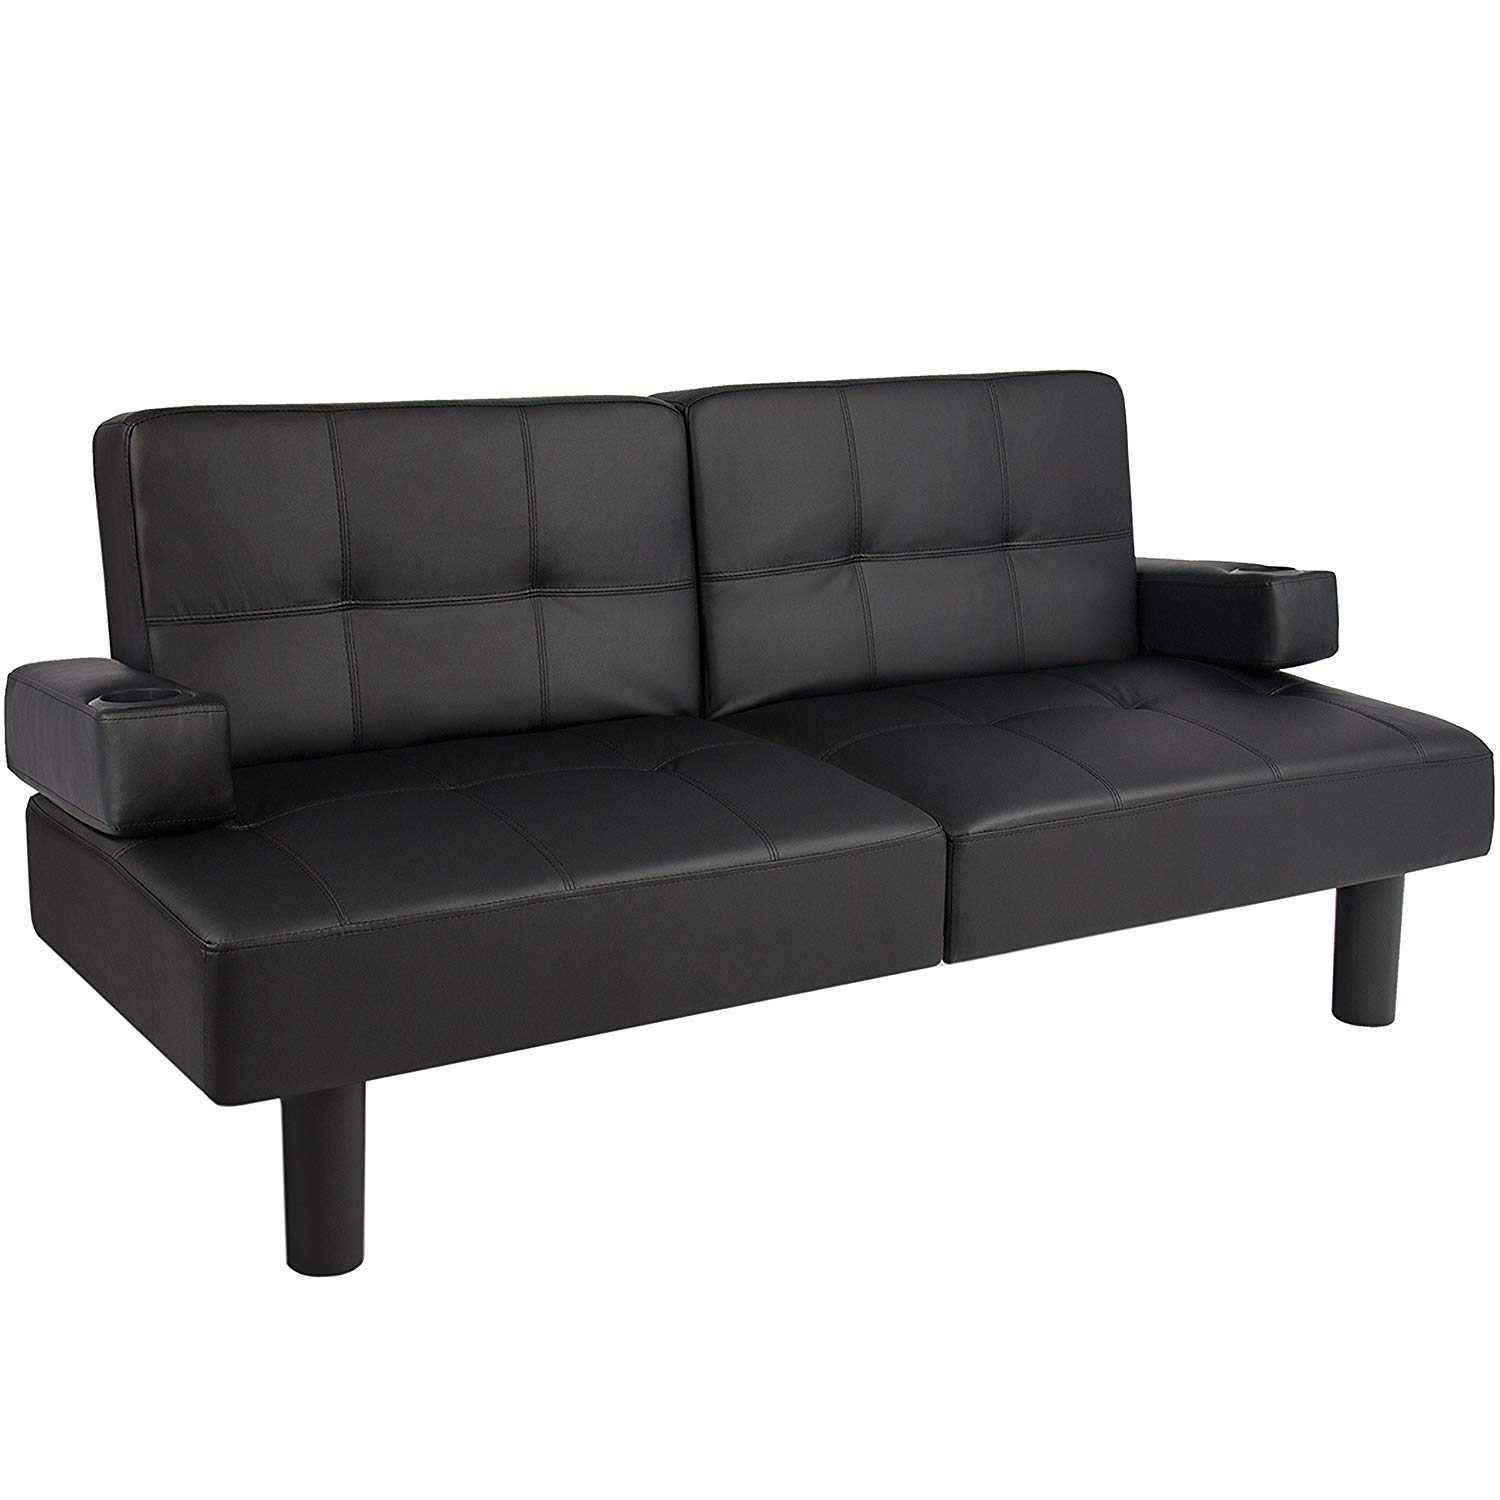 futon couch amazon.com: best choice products leather faux fold down futon lounge JBIGYGQ